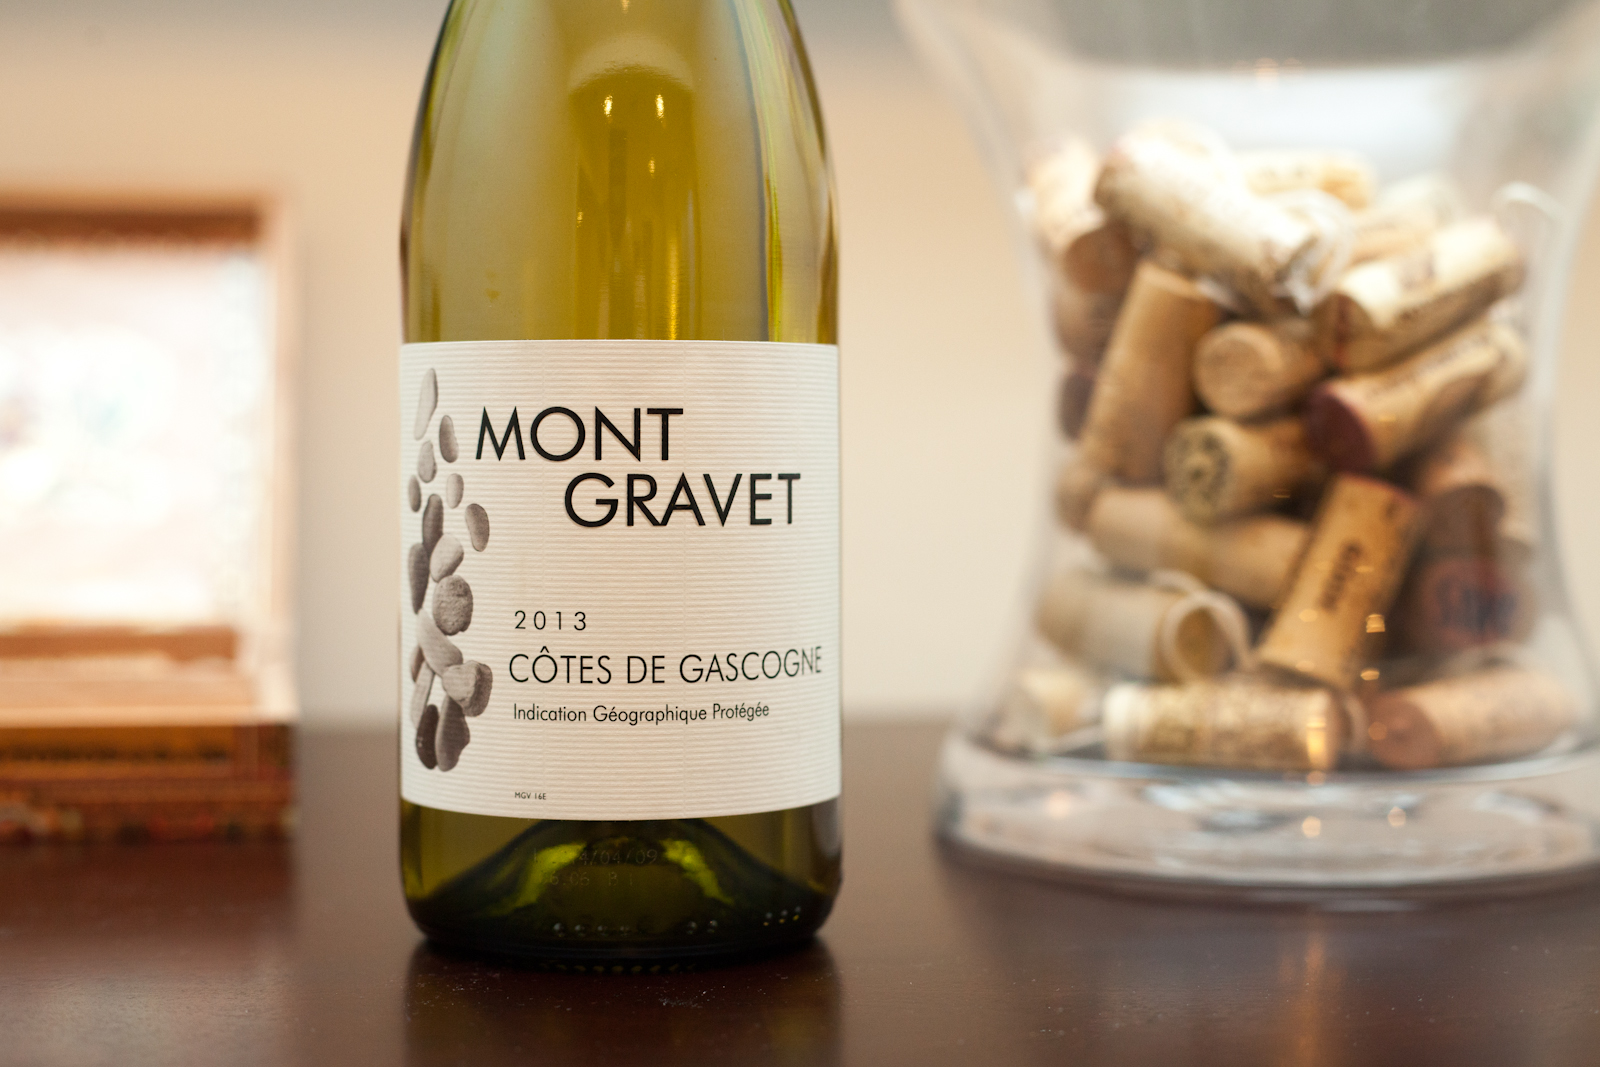 Mont Gravet white wine